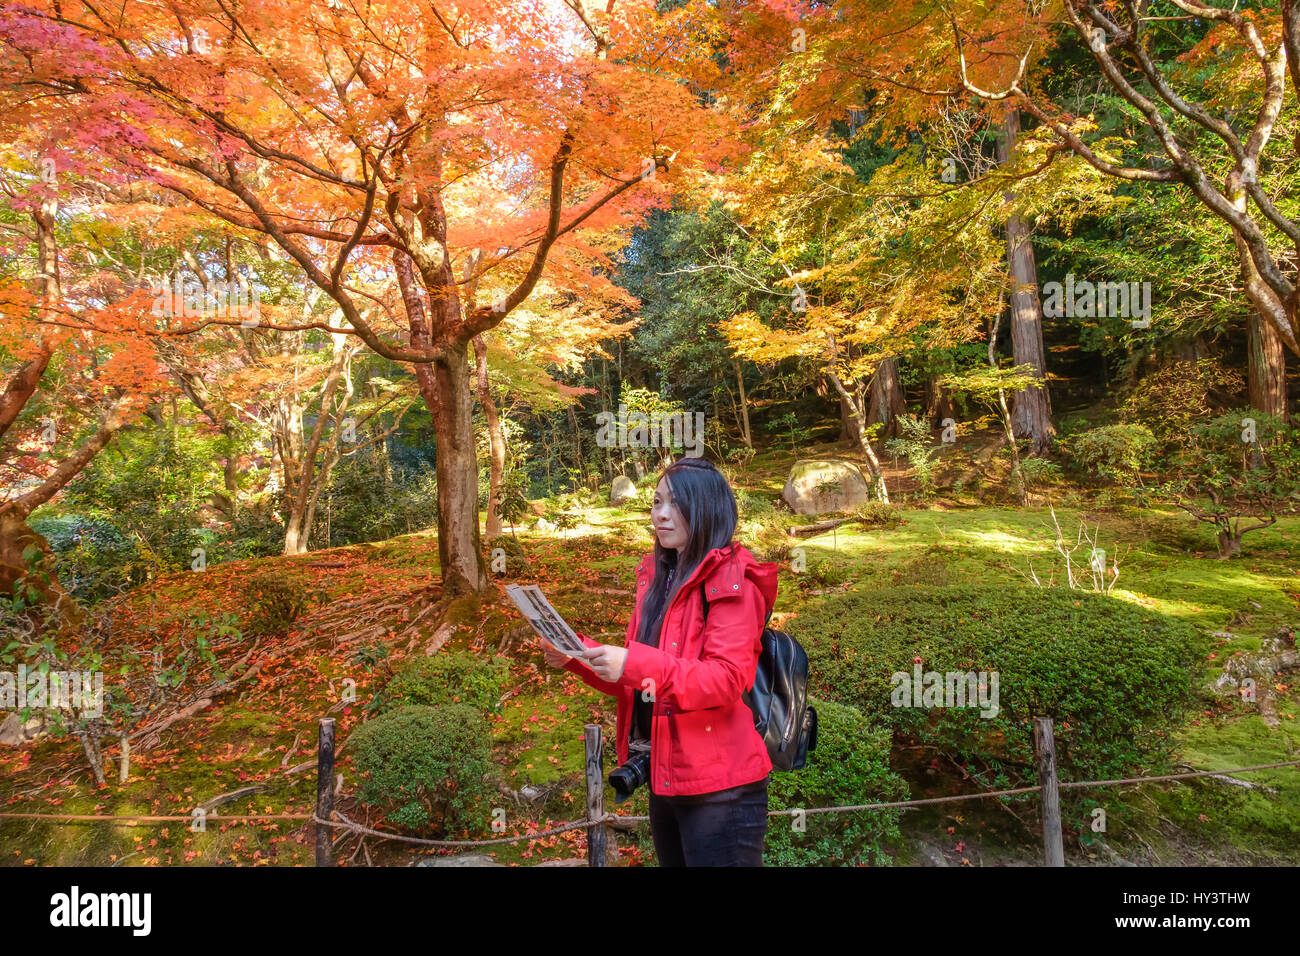 Woman tourist in red jacket and with camera and map stands and looks in garden with autumn colour trees in Shisen - Stock Image